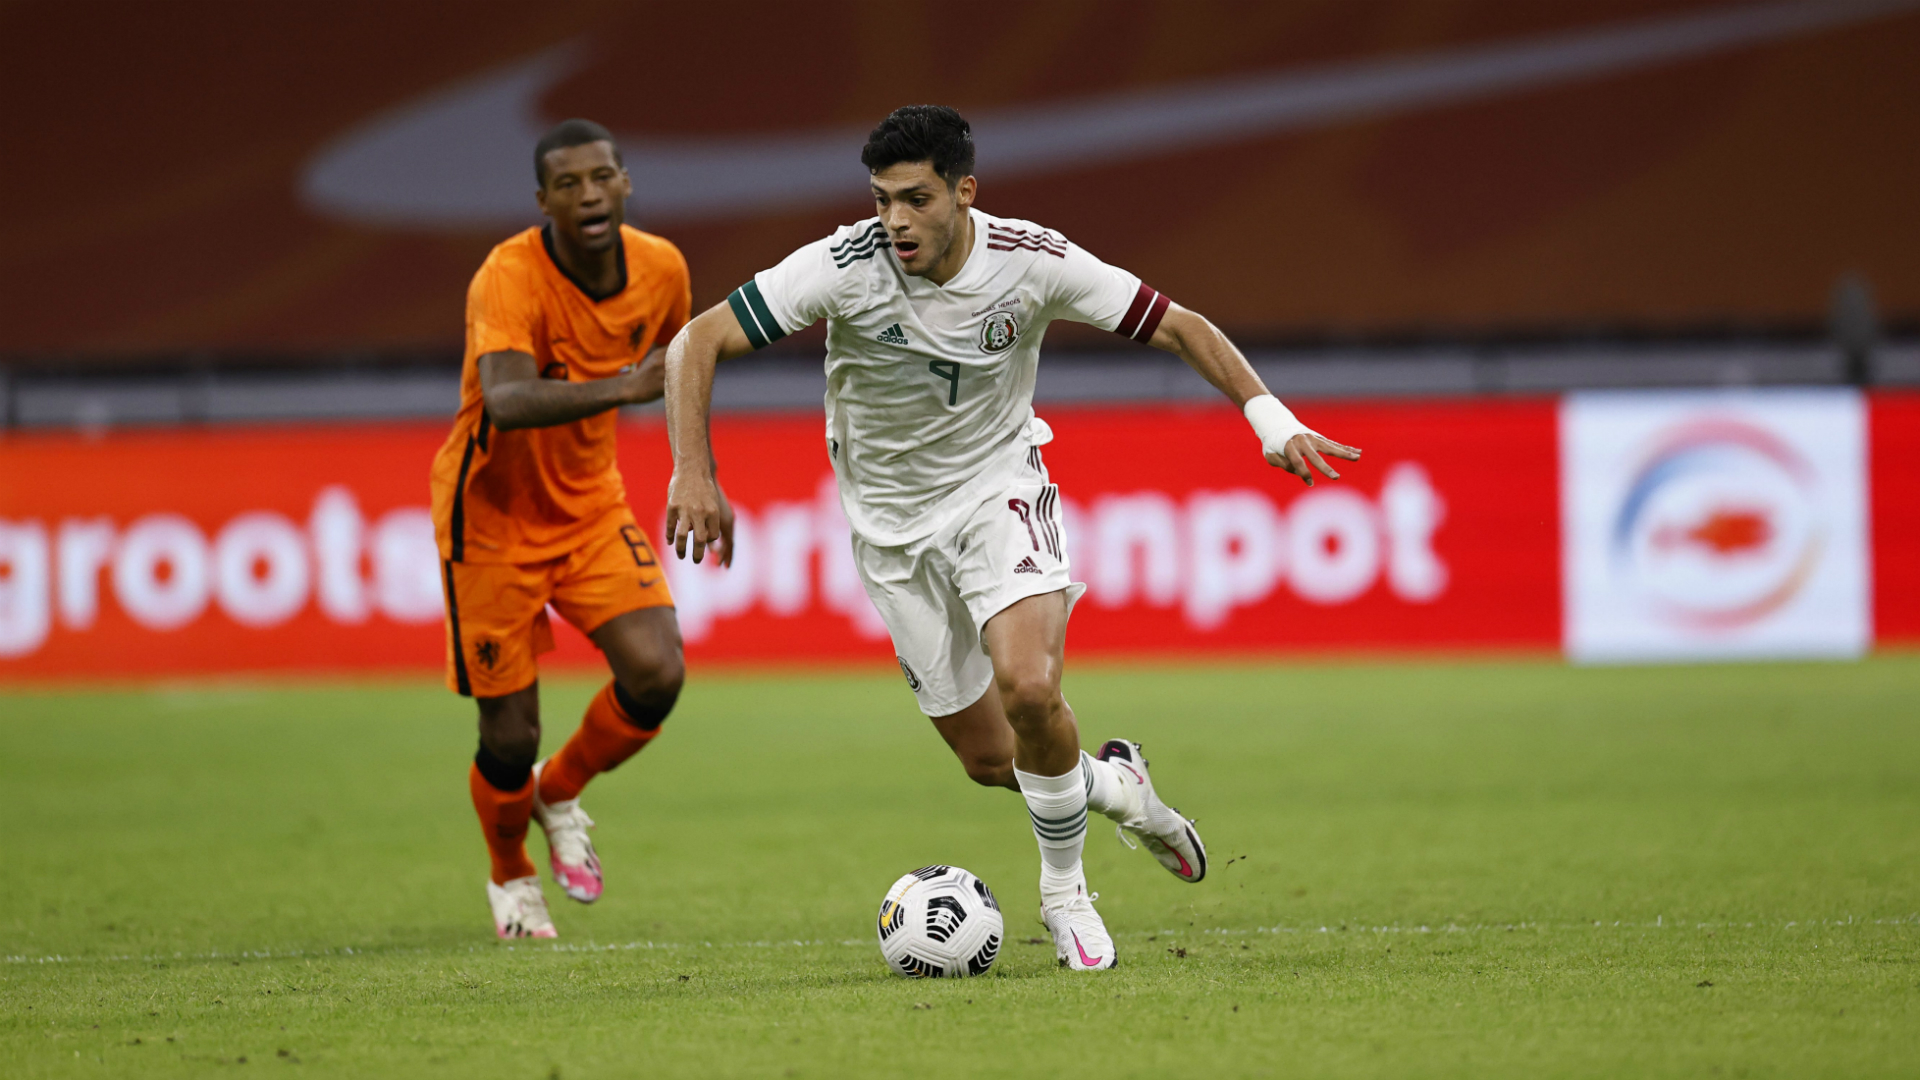 Mexico vs netherlands betting predictions for english premier matched betting calculator xls medical fat